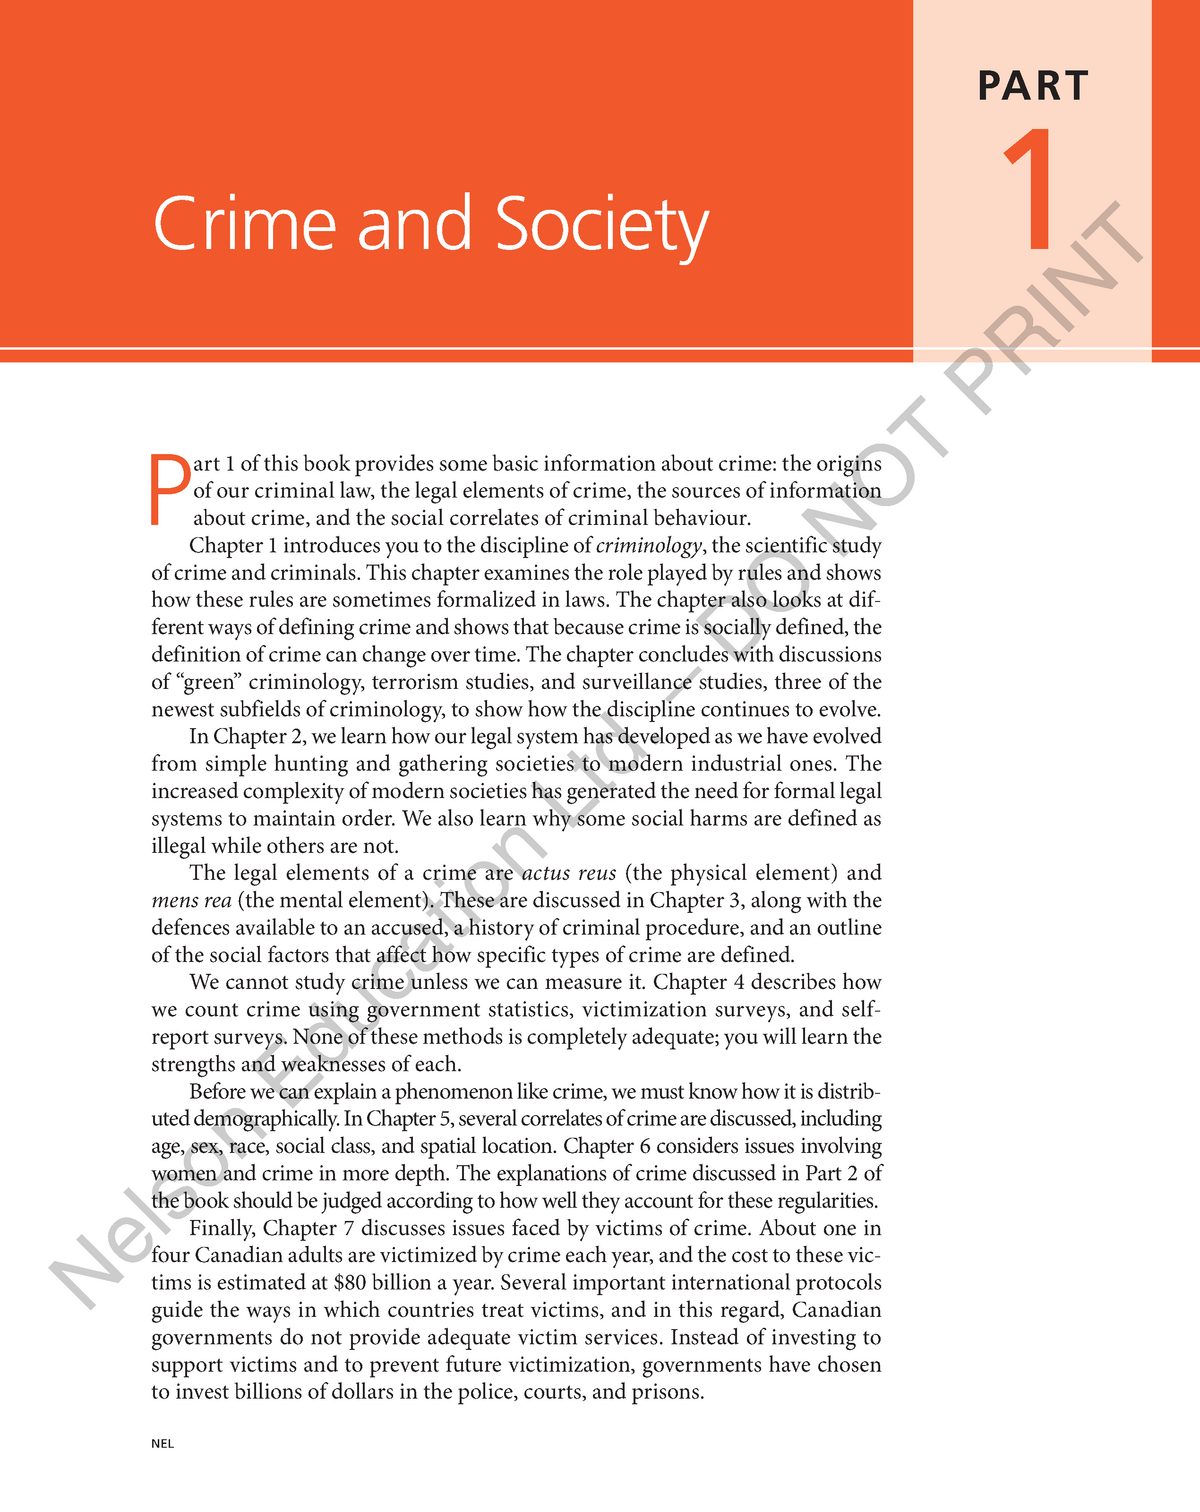 01 ch01 - Summary Criminology - CRM1300 - StuDocu